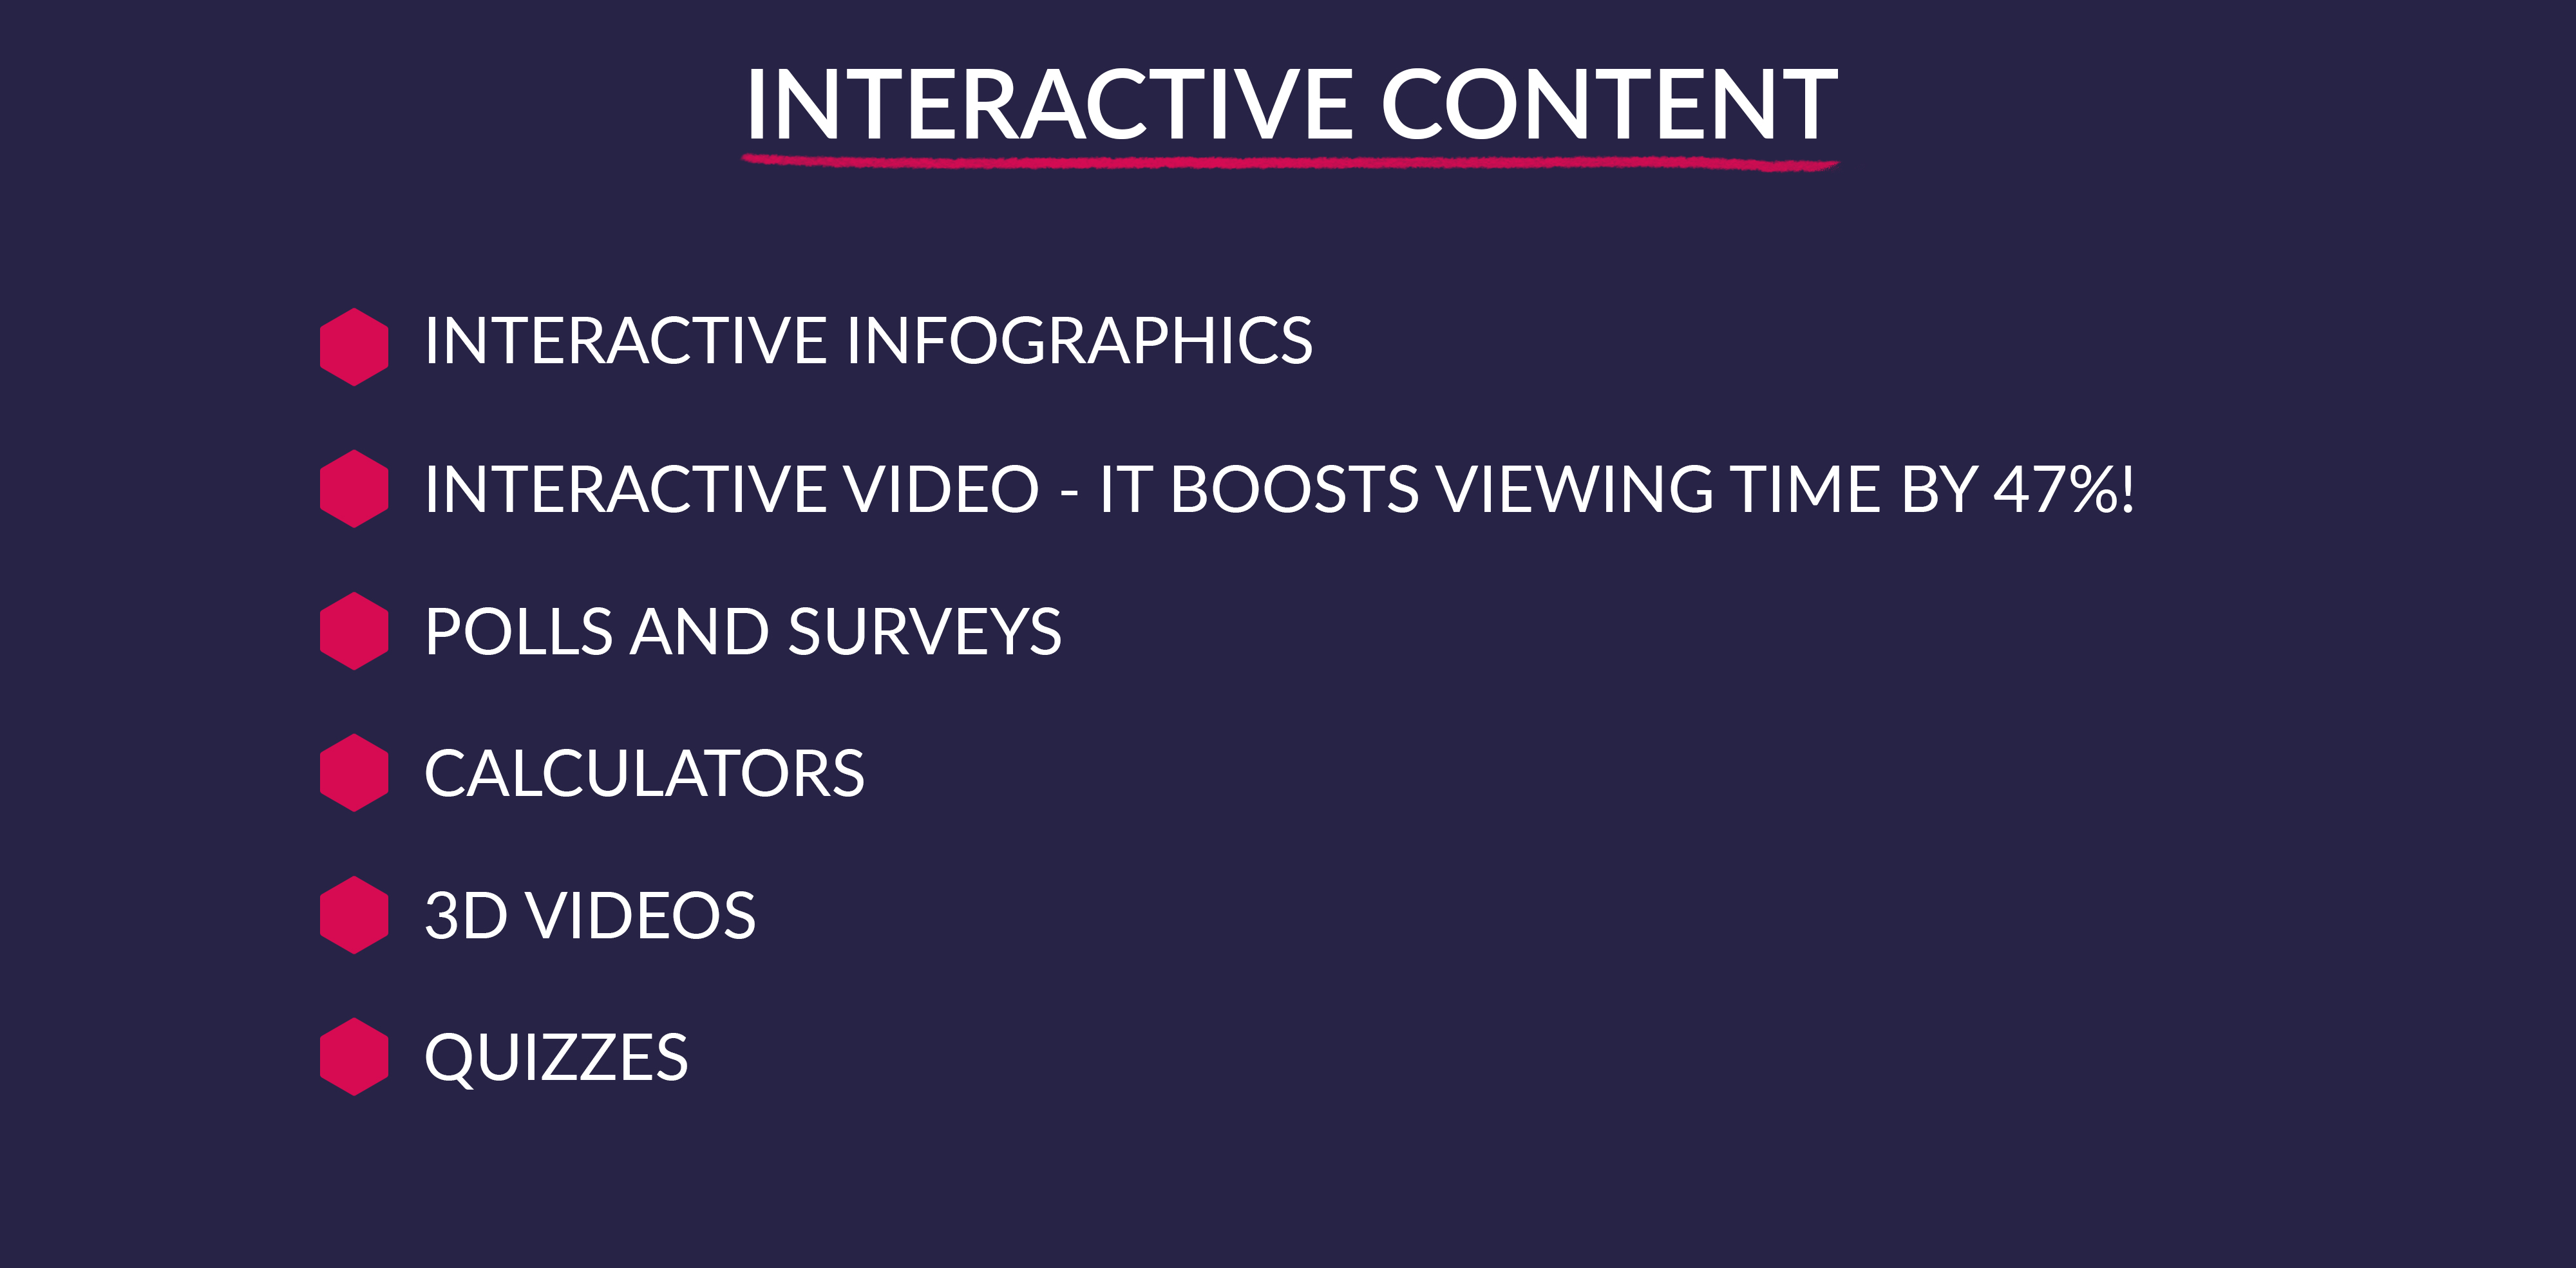 Provide customers with interactiv